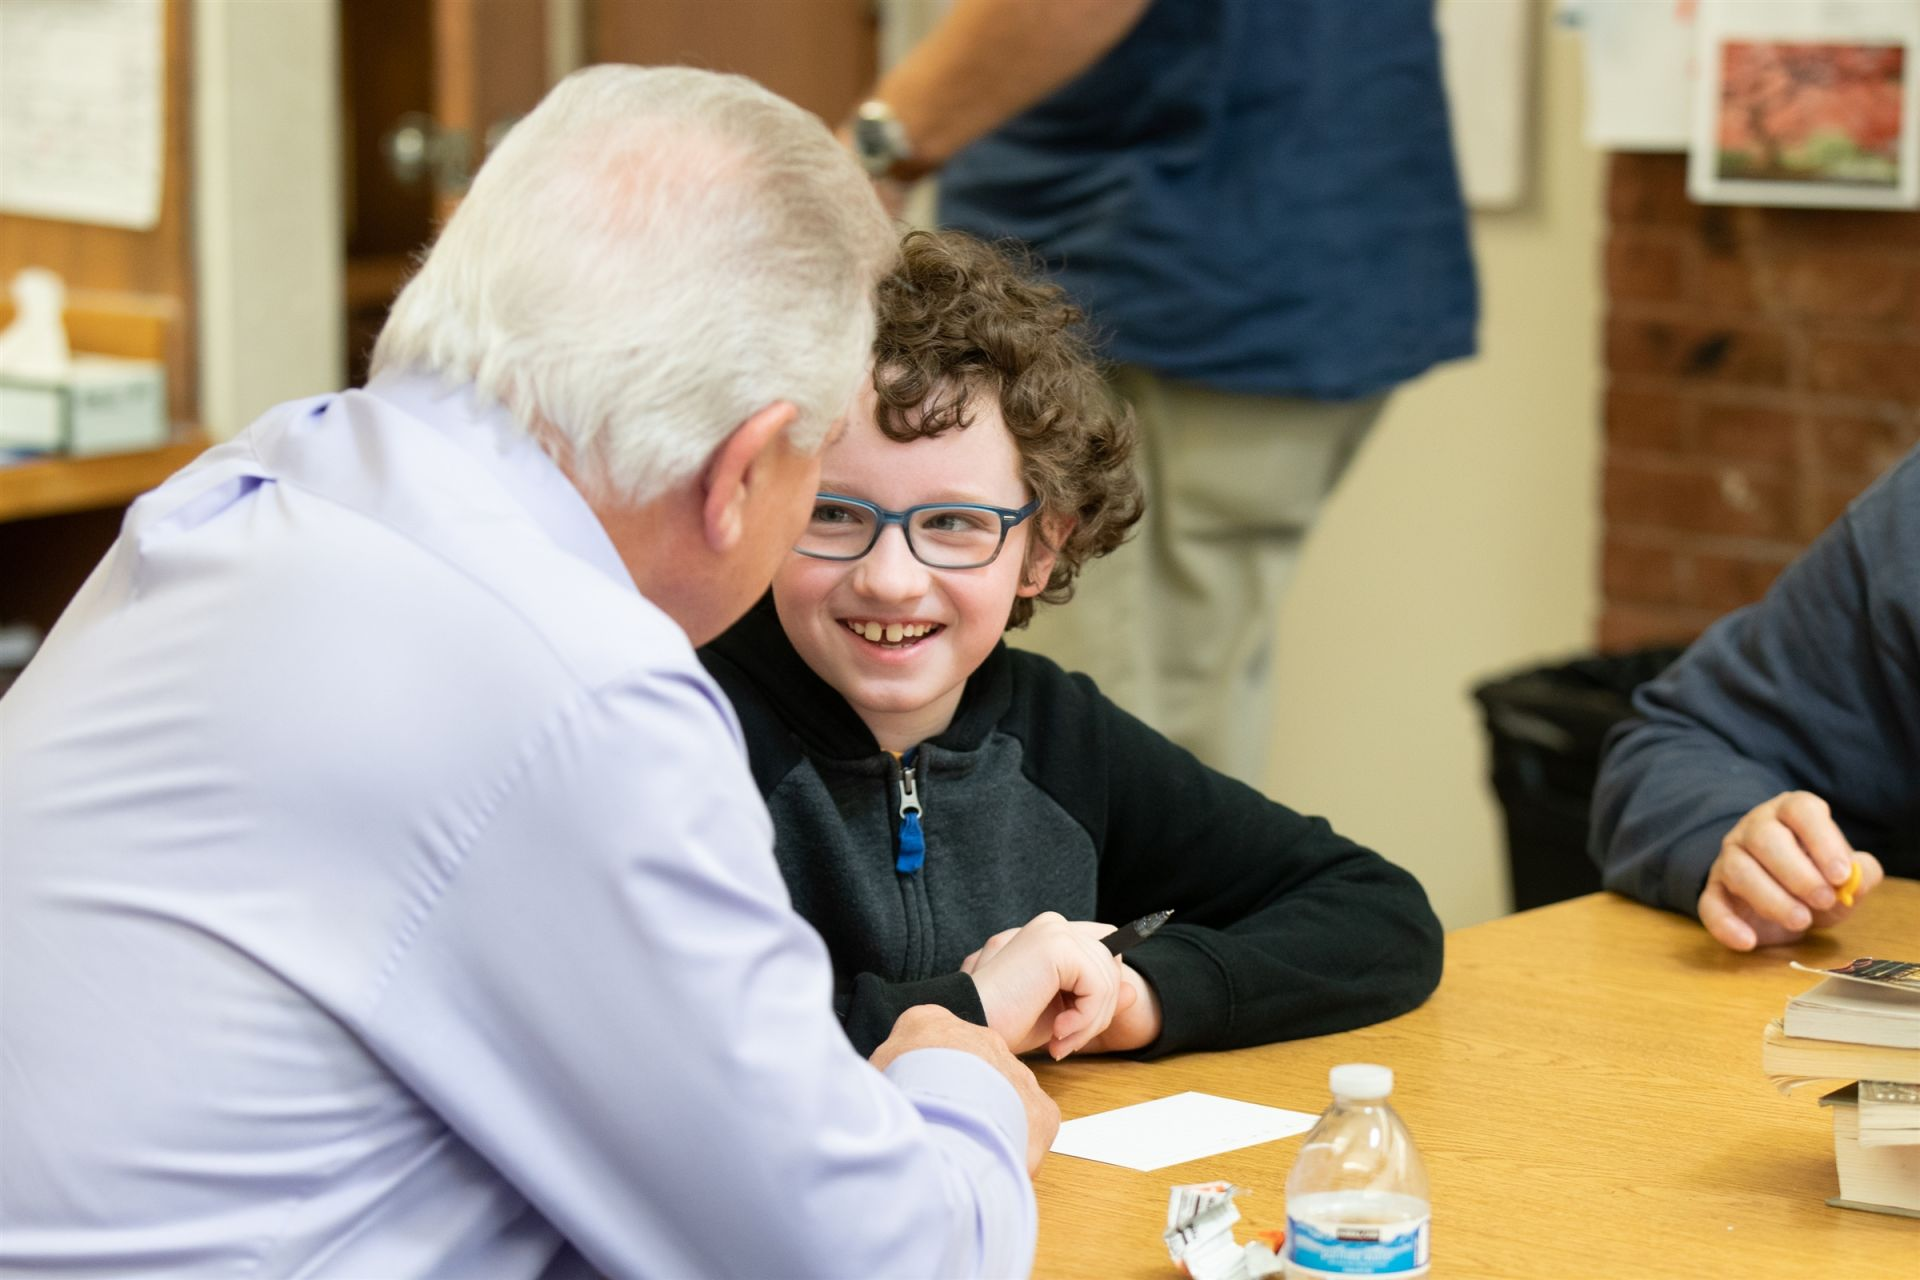 A student with glasses smiles at his significant elder.